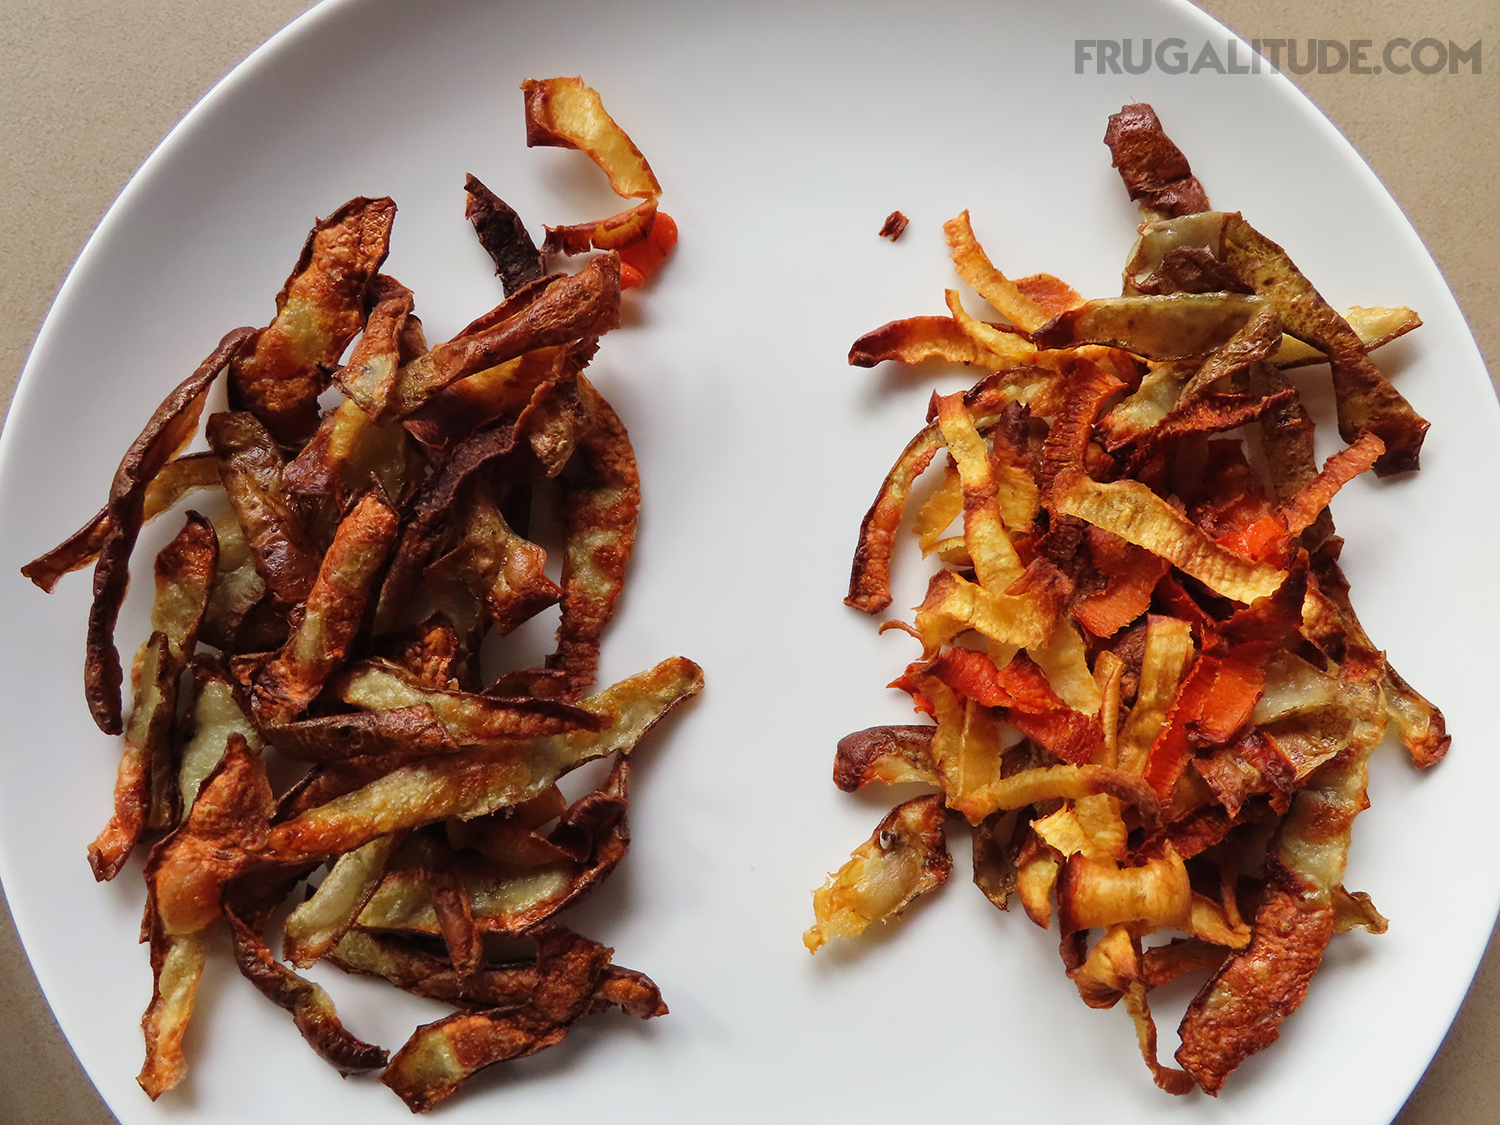 Blanched peelings vs non-blanched peelings